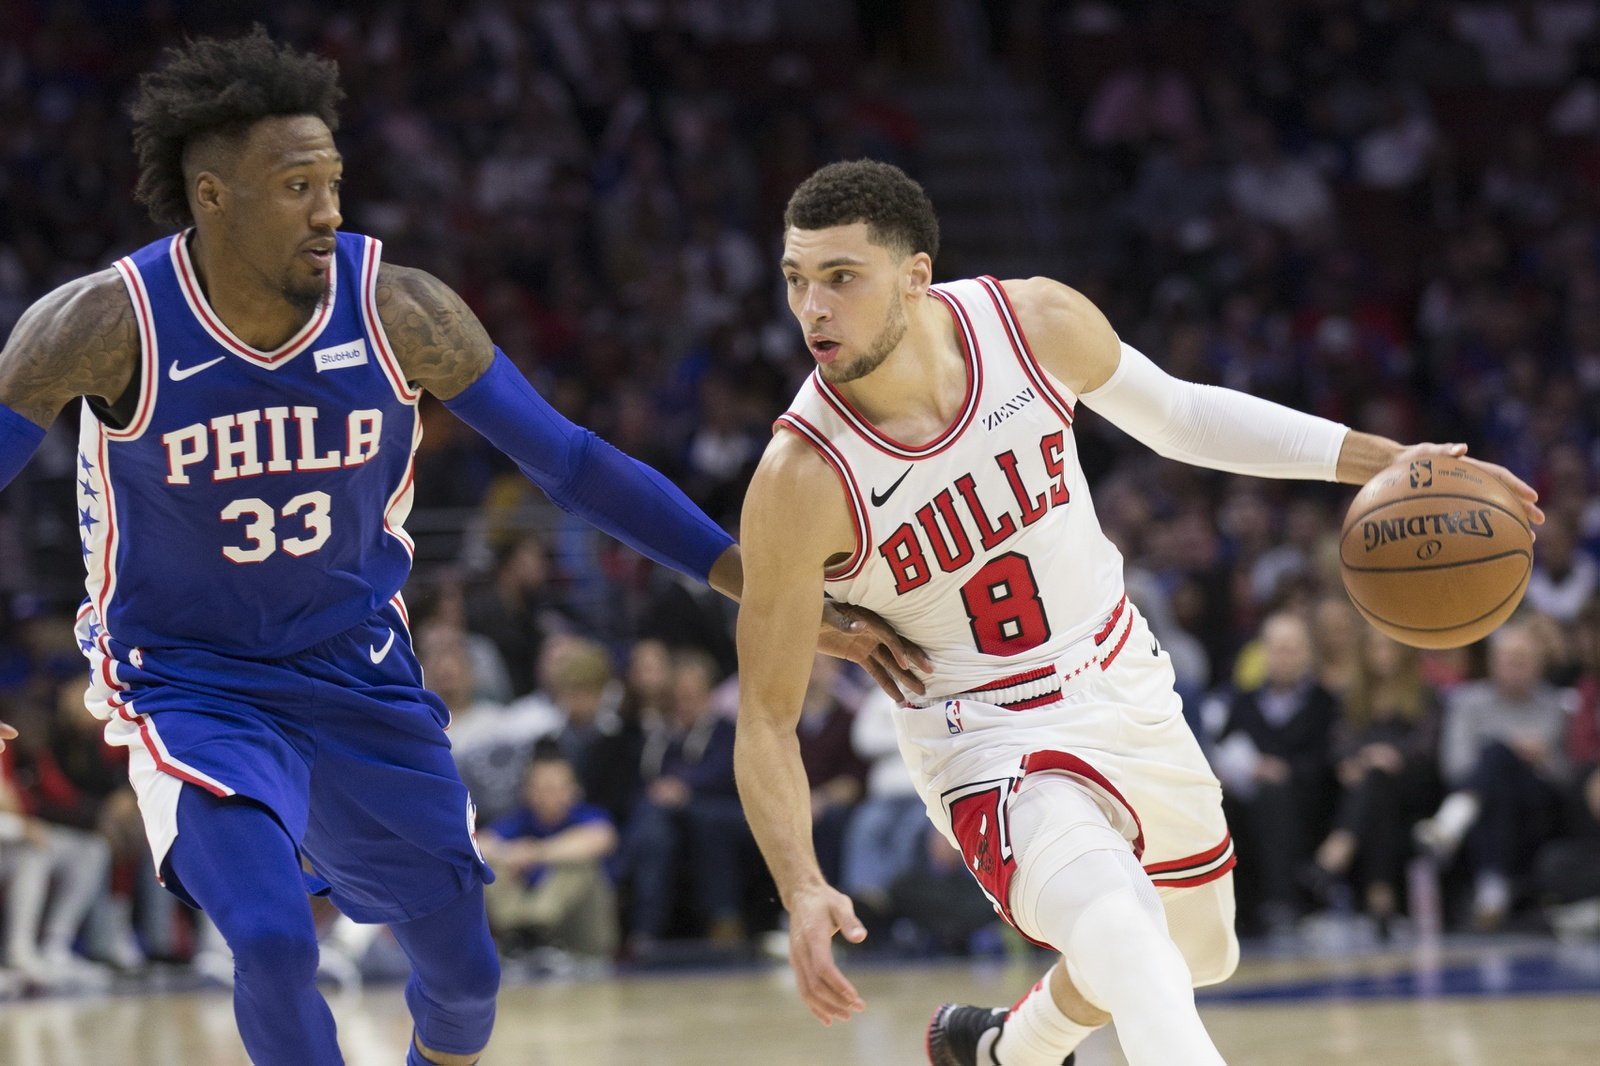 Zach LaVine #8 of the Chicago Bulls drives to the basket against Robert Covington #33 of the Philadelphia 76ers in the third quarter at Wells Fargo Center on October 18, 2018 in Philadelphia, Pennsylvania. The 76ers defeated the Bulls 127-108.